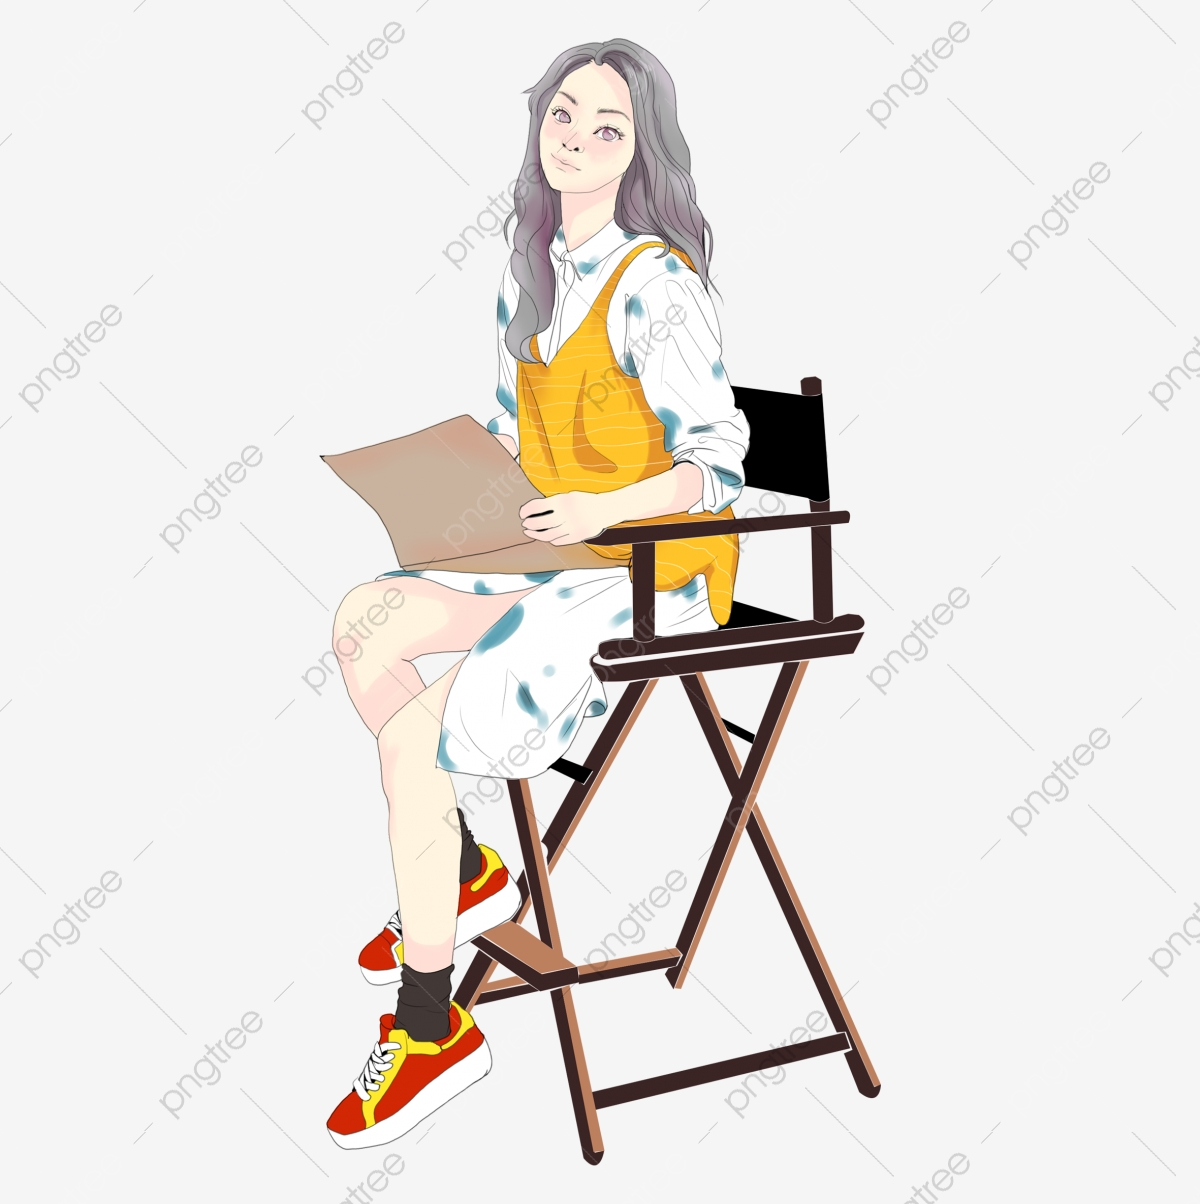 https fr pngtree com freepng beauty illustration man sitting in a chair reading a newspaper sitting person illustration 3954847 html